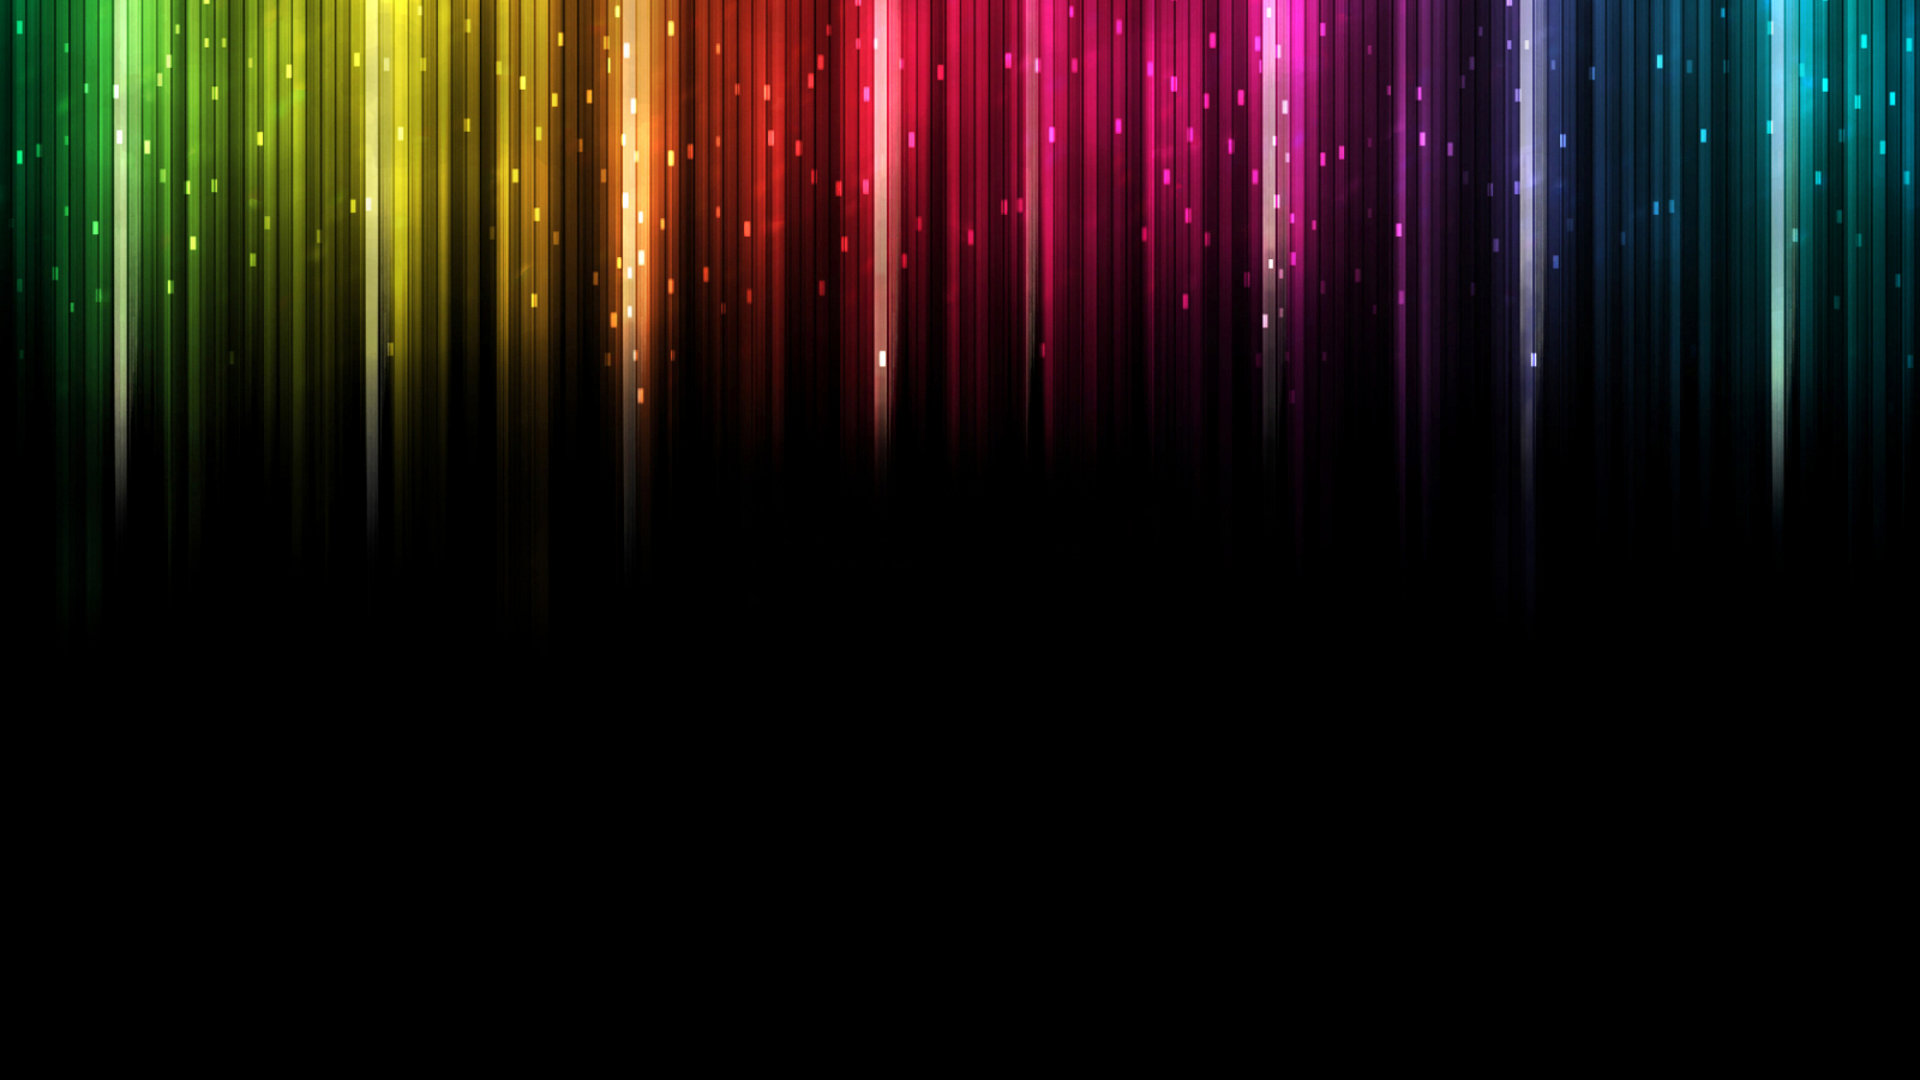 Free Colorful pattern high quality background ID:232539 for full hd 1080p computer